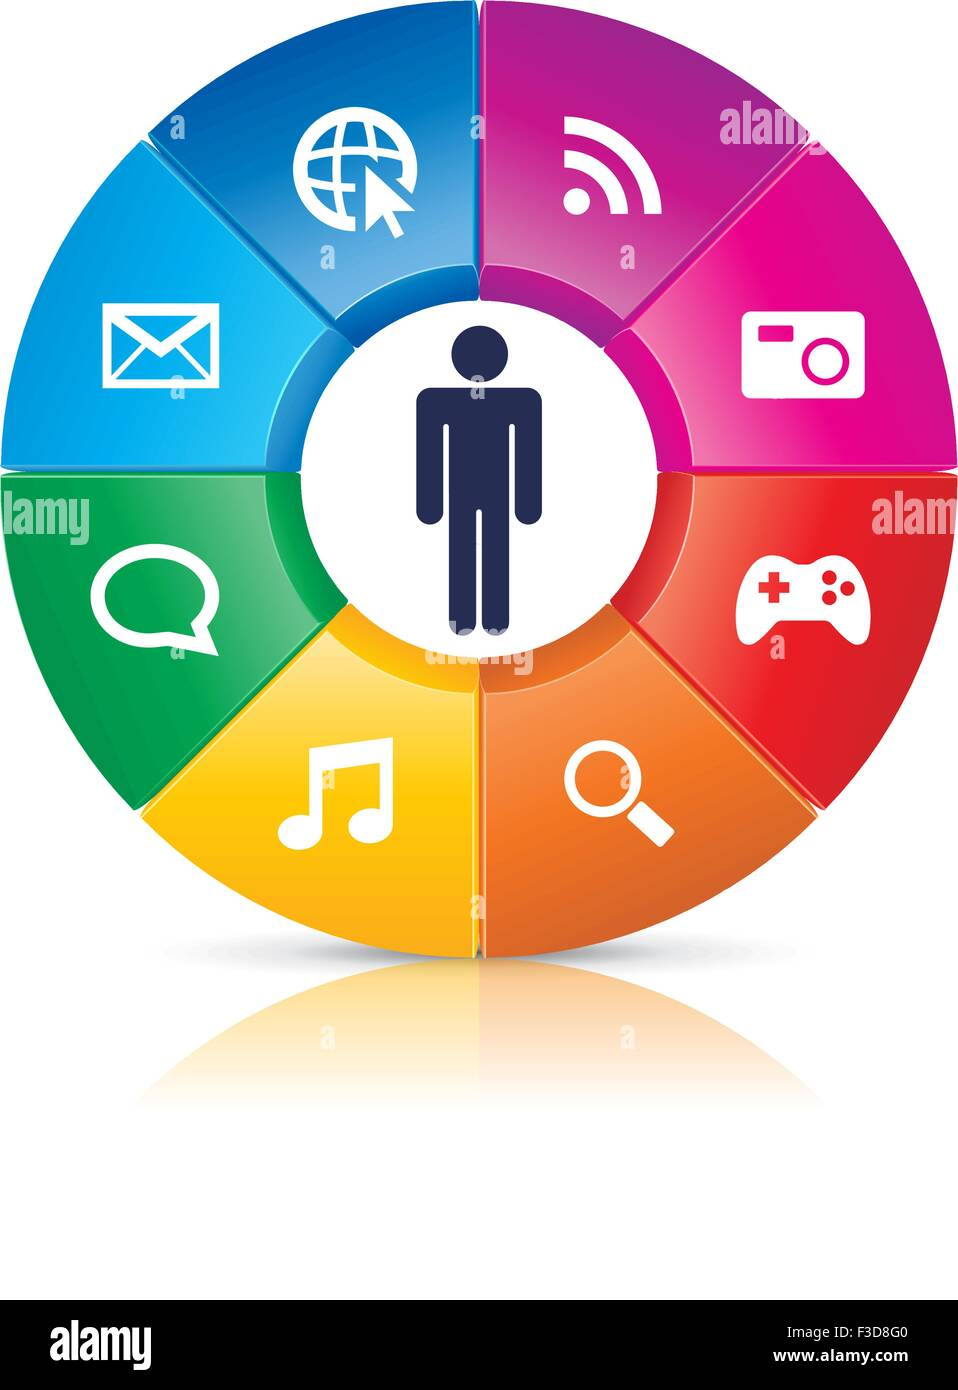 This image is a vector file representing a User Centerd Design concept. - Stock Image